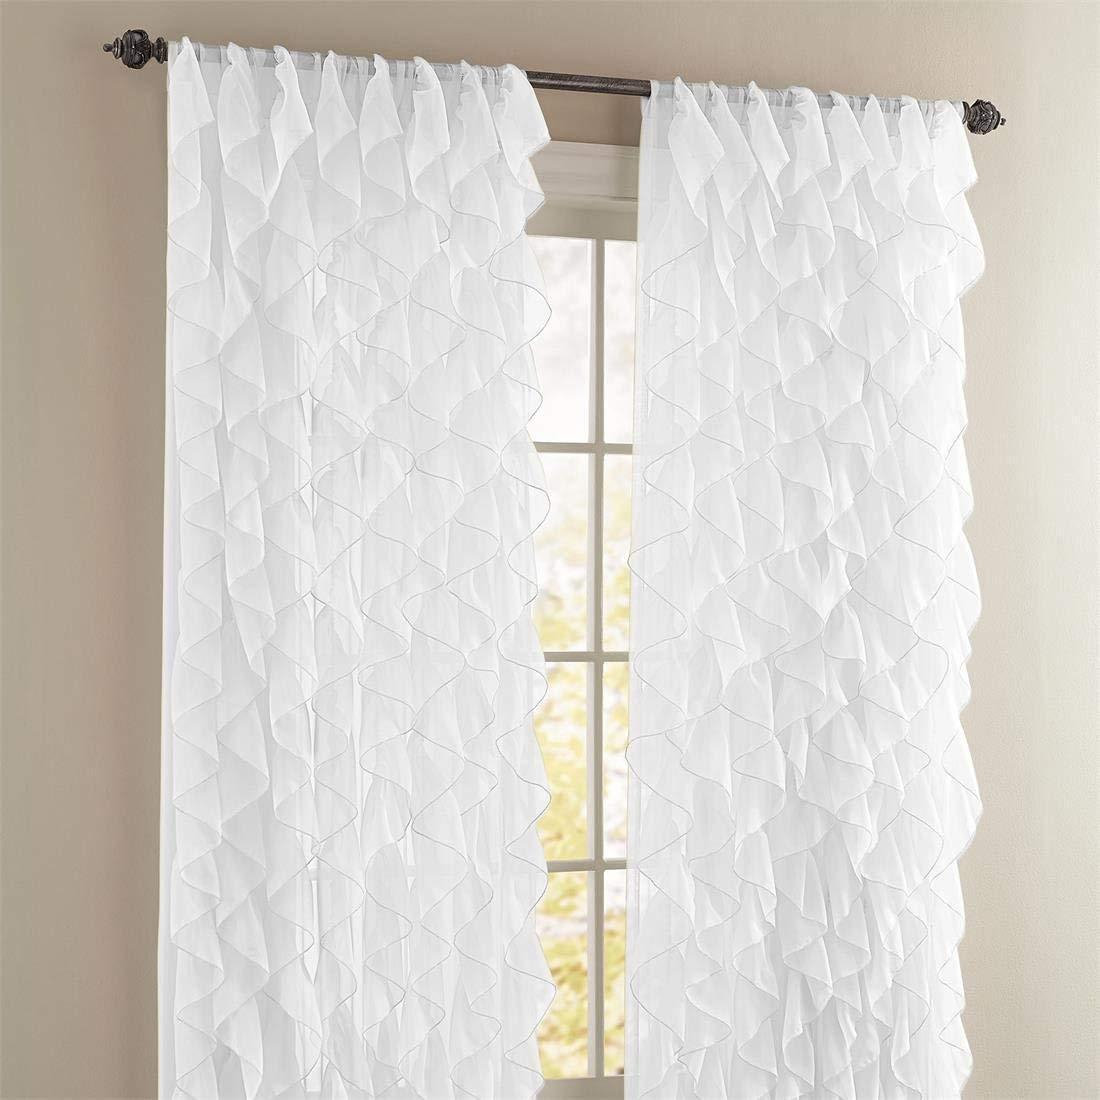 "Cascade Ruffled Curtain Panel, 50"" Wide84"" Long, White, Lorraine Home In Sheer Voile Waterfall Ruffled Tier Single Curtain Panels (View 12 of 20)"